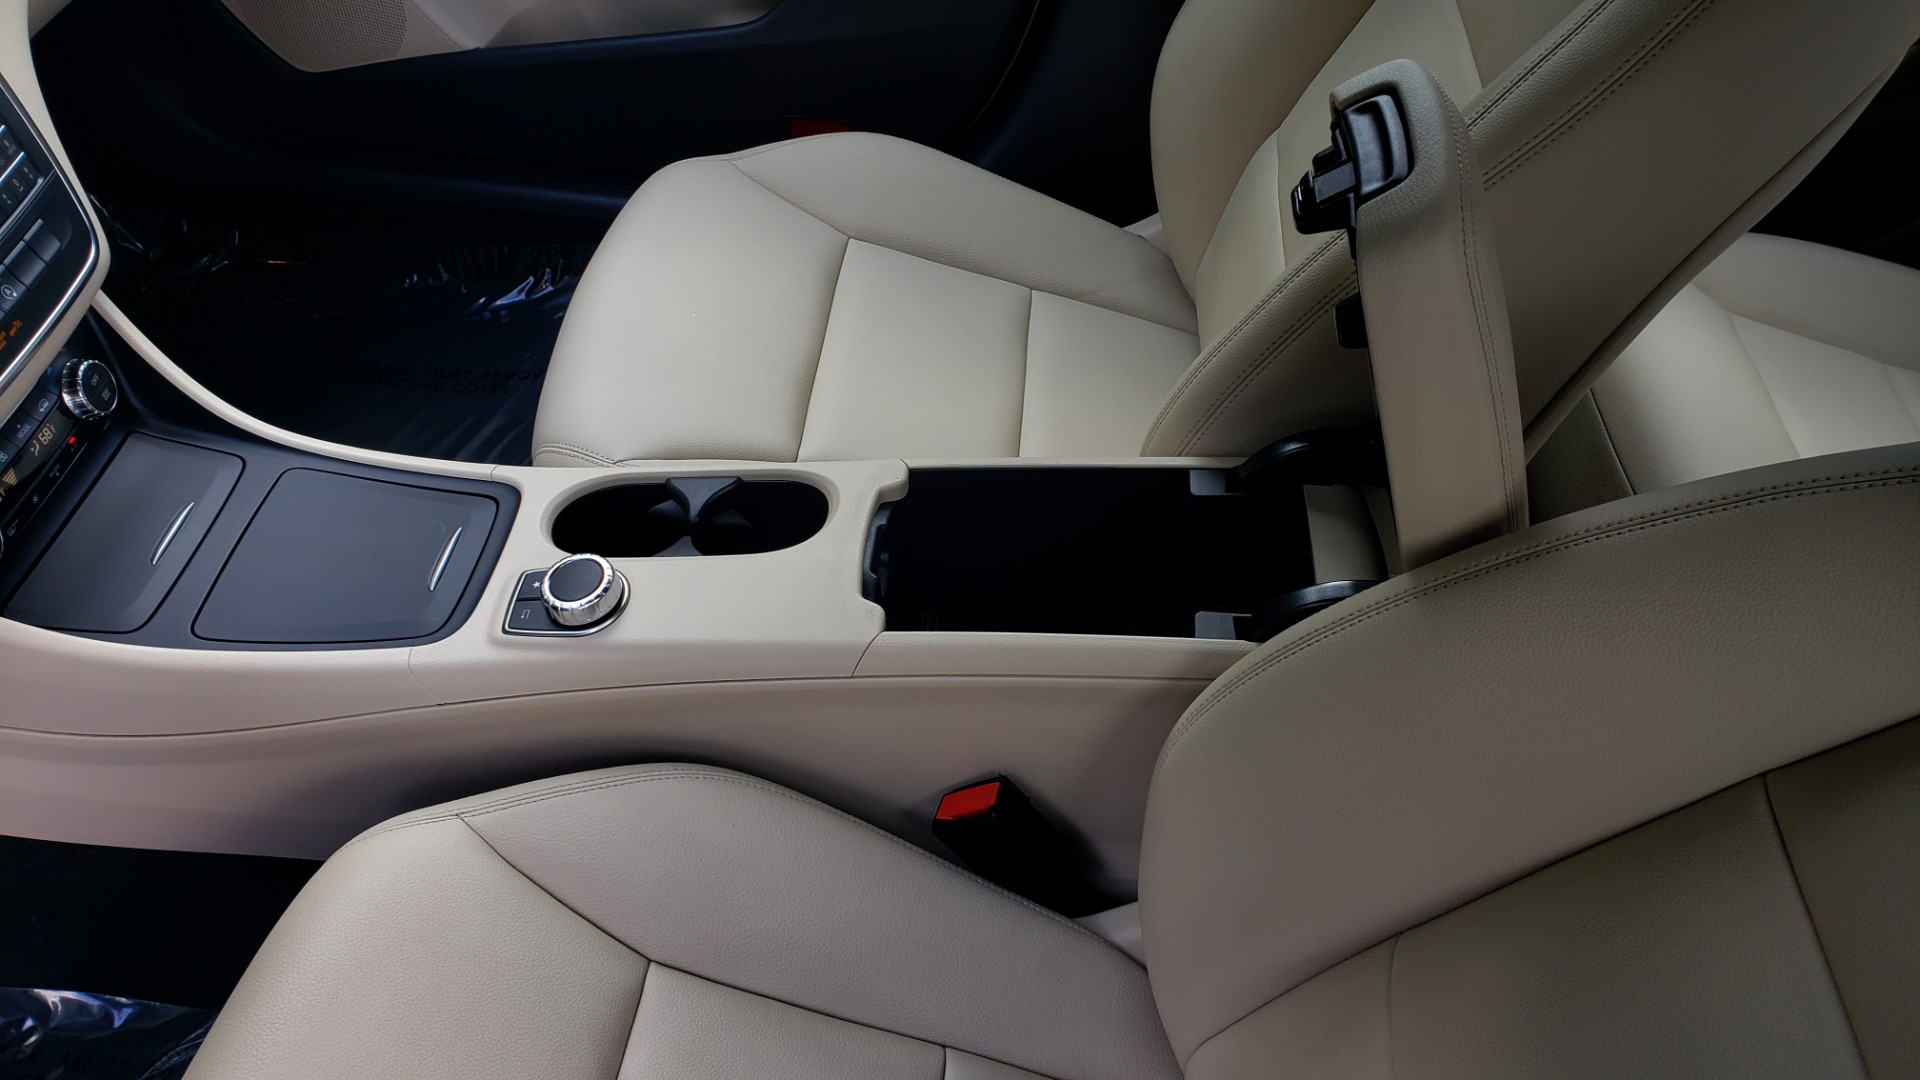 Used 2015 Mercedes-Benz CLA-Class CLA250 / FWD / SUNROOF / SPORT SUSP / CAMERA for sale Sold at Formula One Imports in Charlotte NC 28227 48